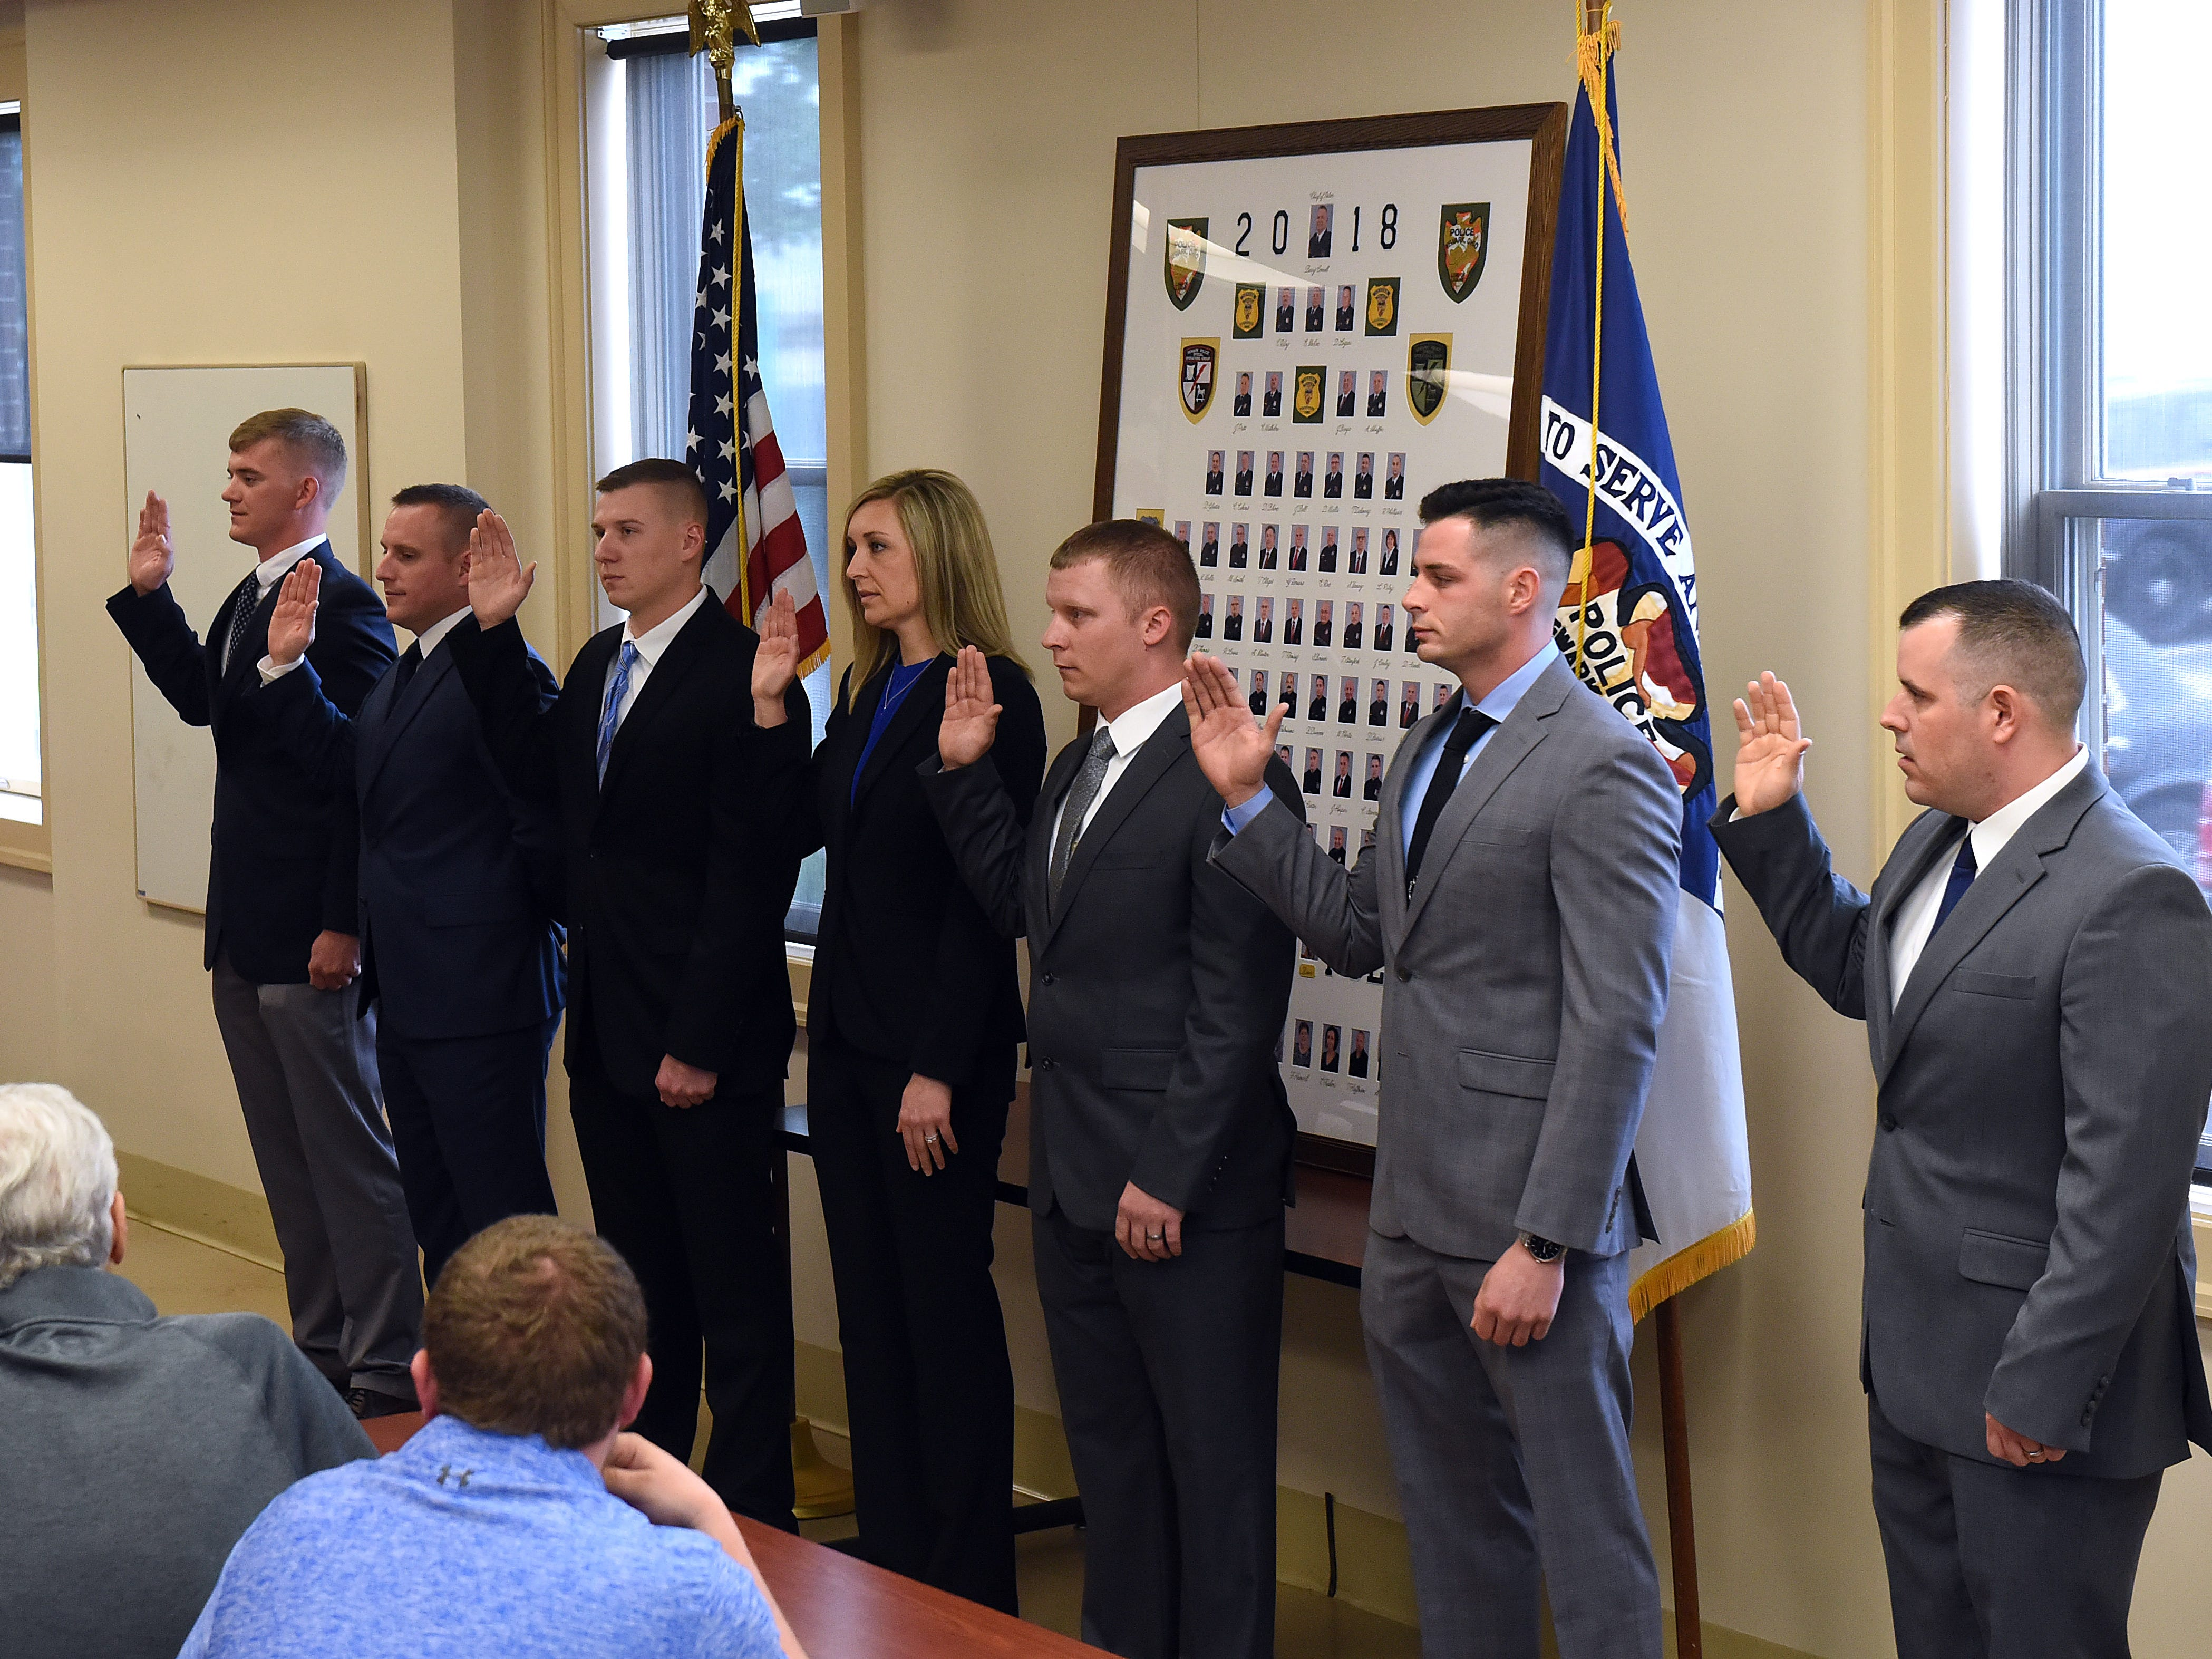 City of Newark Safety Director Steve Baum administers the oath to seven new Newark City Police officers; Joshua Craft, Jacob OÕNeal, Robert Brown, Lindy Jewell, Justin Cortez, and Brandon Shepherd, during a ceremony on Monday, April 29, 2019.